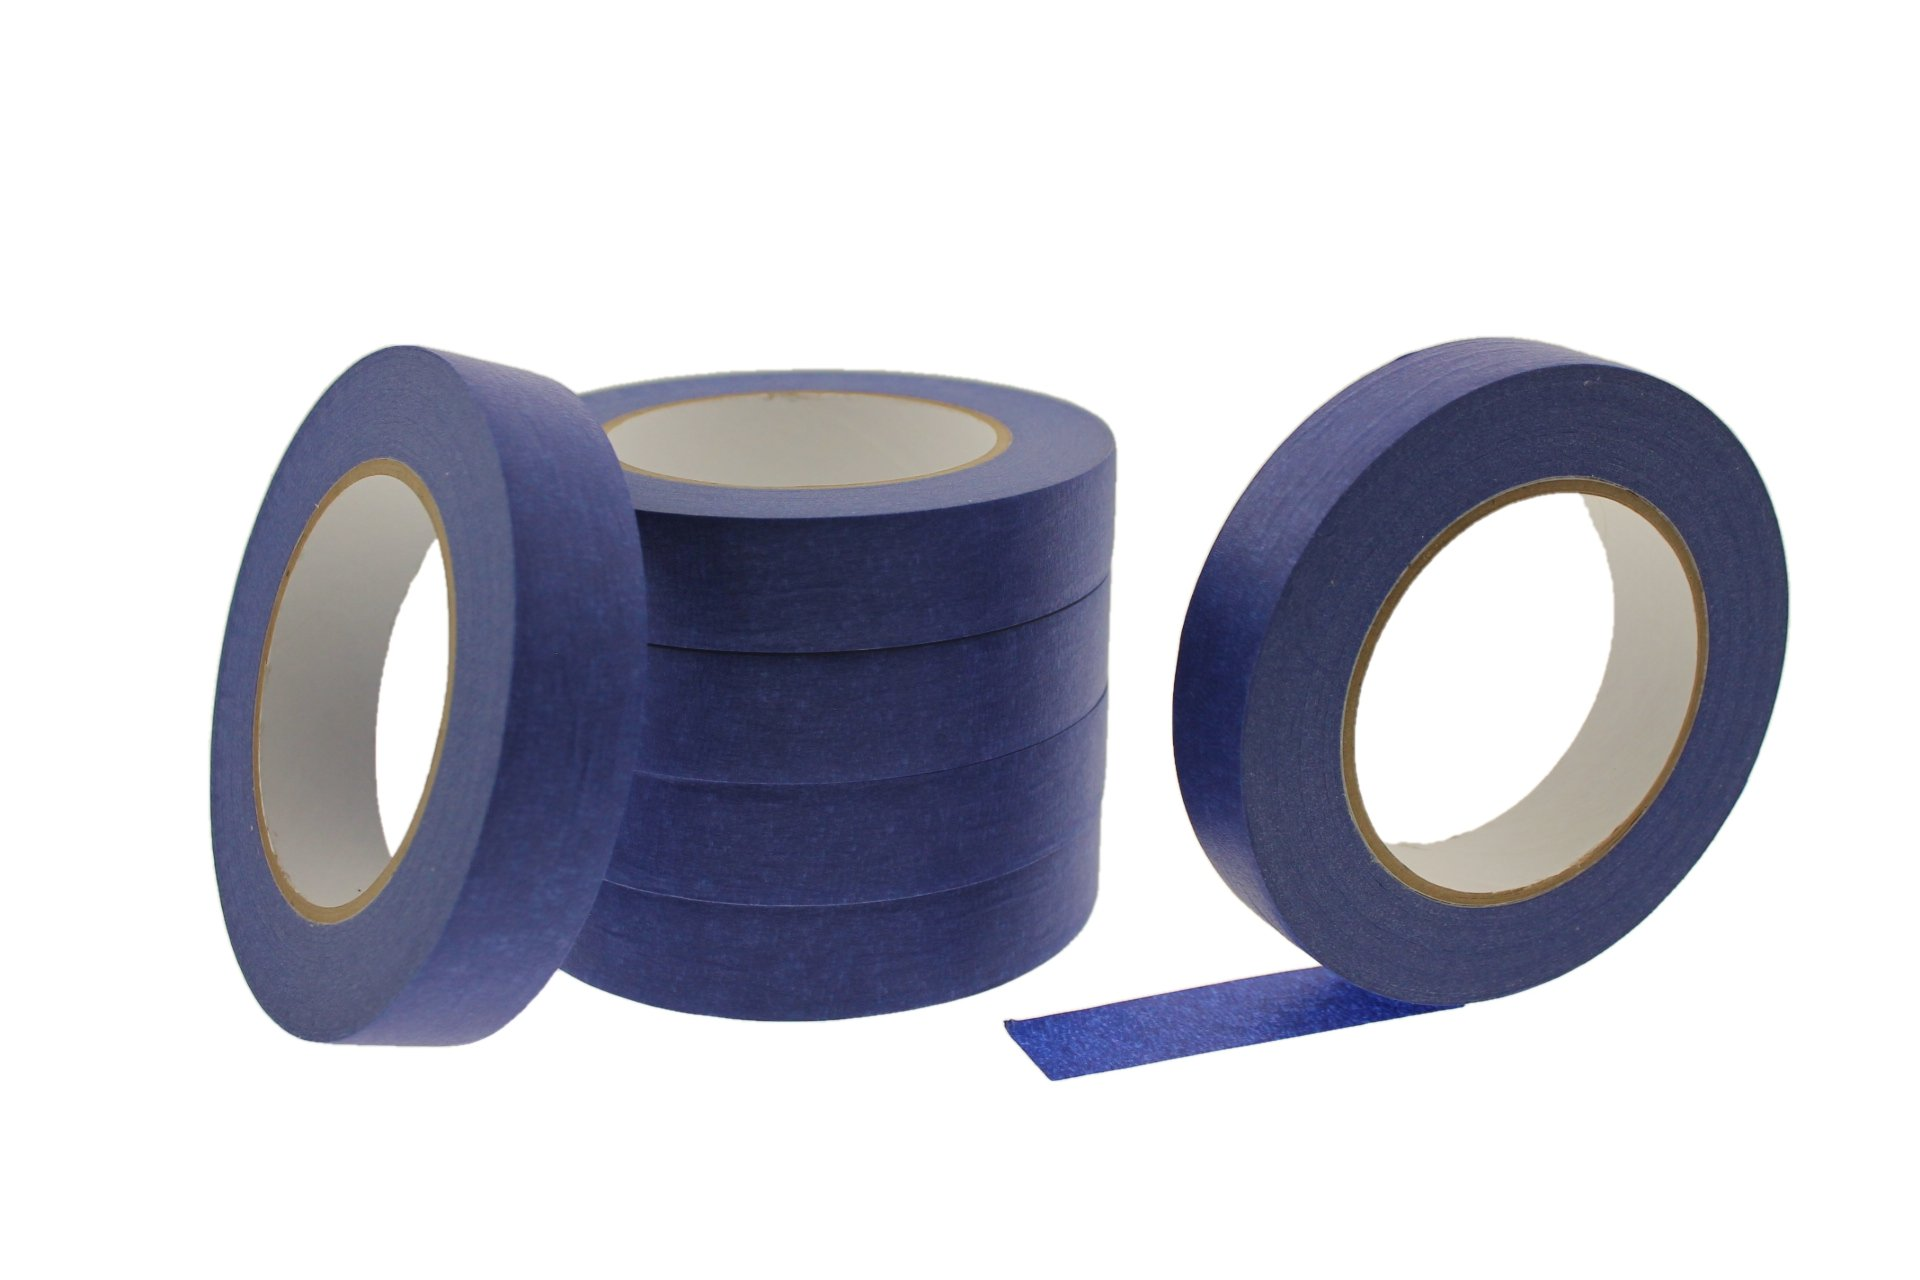 6pk 1'' x 60 yd Blue Painters Tape PROFESSIONAL Grade Masking Edge Trim Easy Removal MADE IN USA Textured Crepe Paper Very Sticky Drywall Painting Latex Paint 21 Day Clean Easy Removal (24MM .94 in)